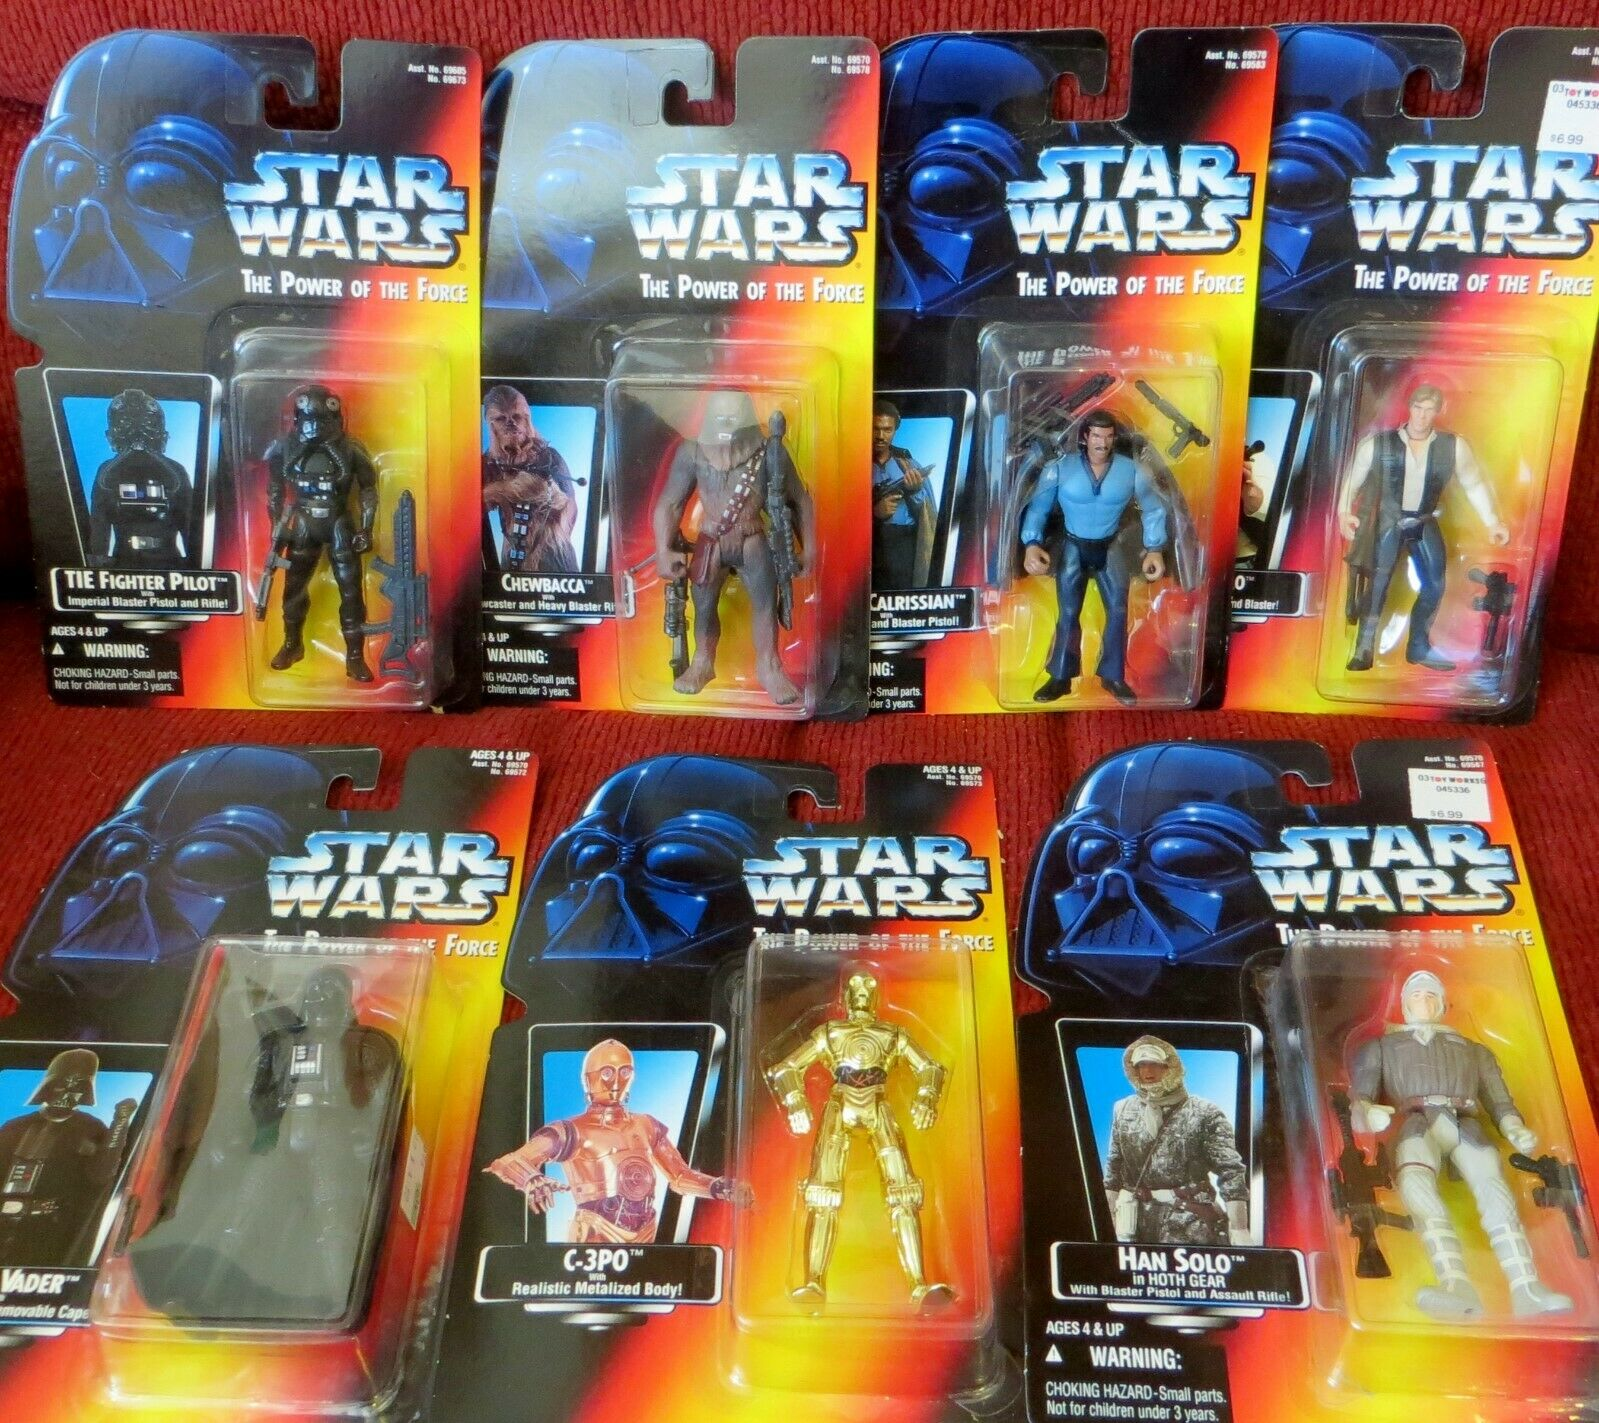 KENNER STAR WARS- THE POWER OF THE FORCE FORCE FORCE - LOT OF 7 FIGURINES -1995 6e94e4